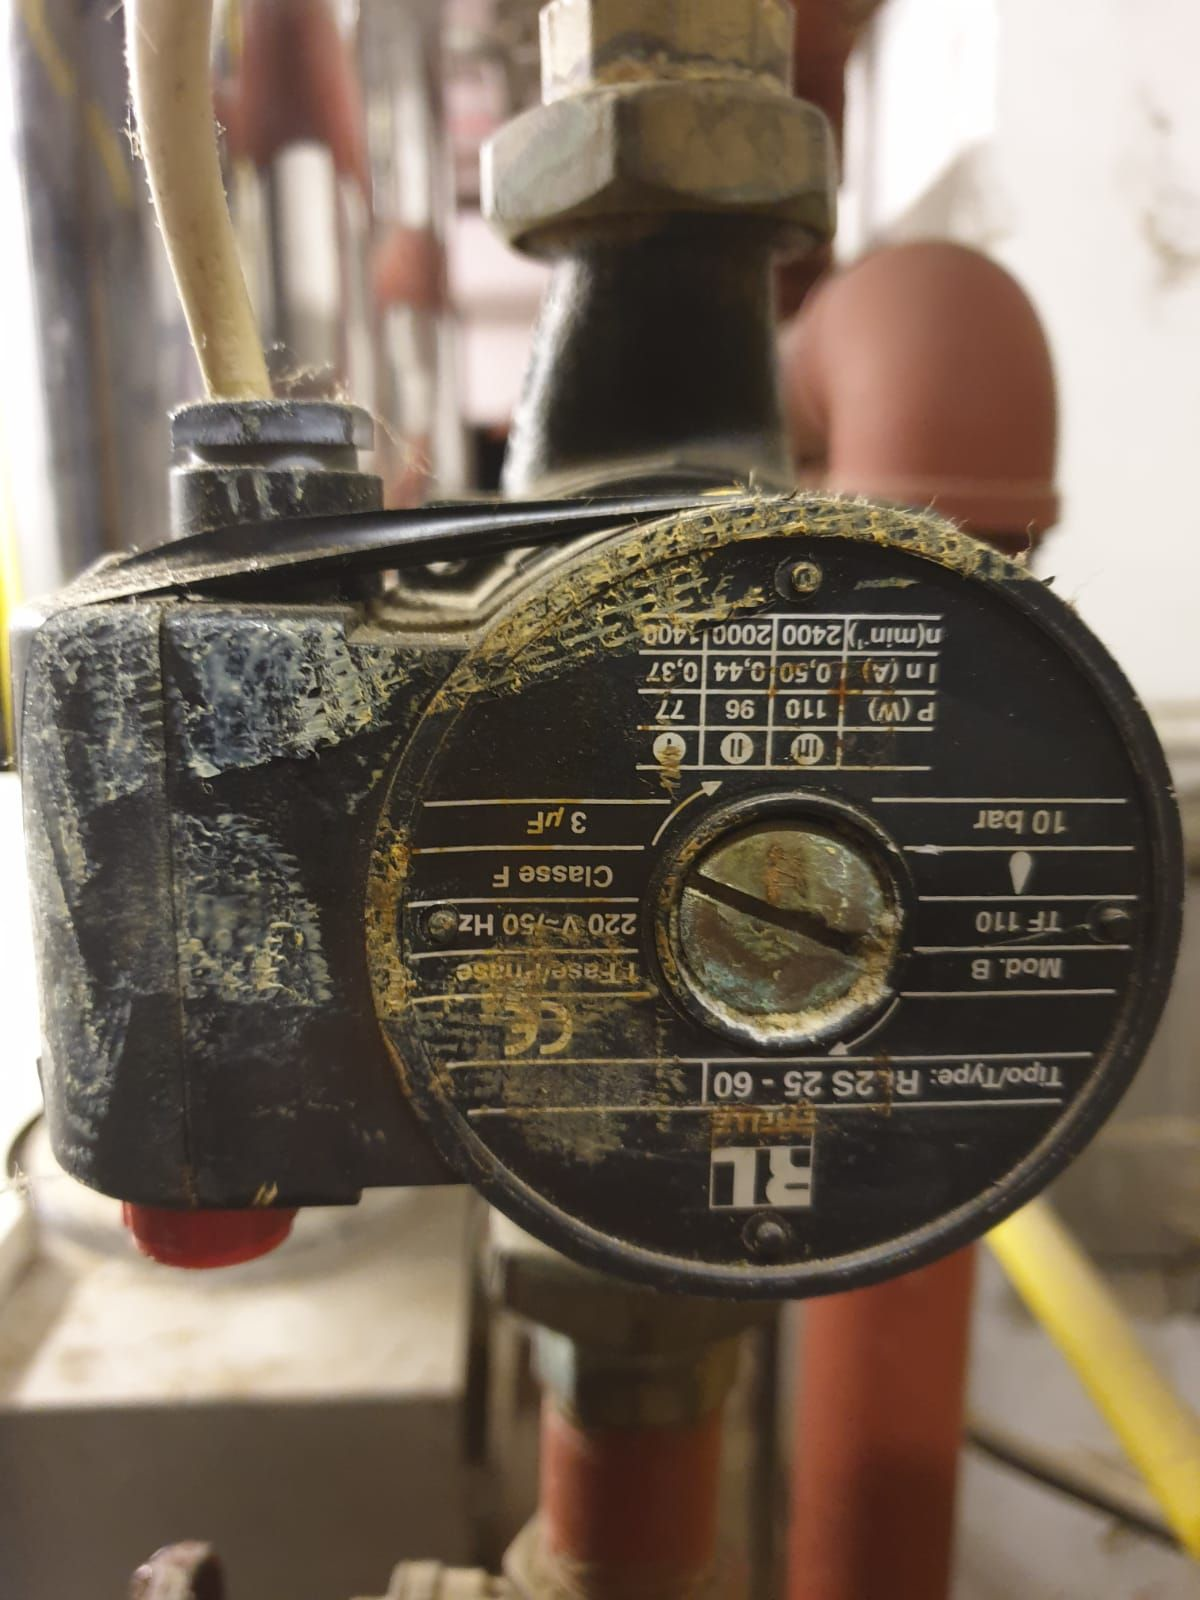 Insulation tape holding the outer case on circulation pump